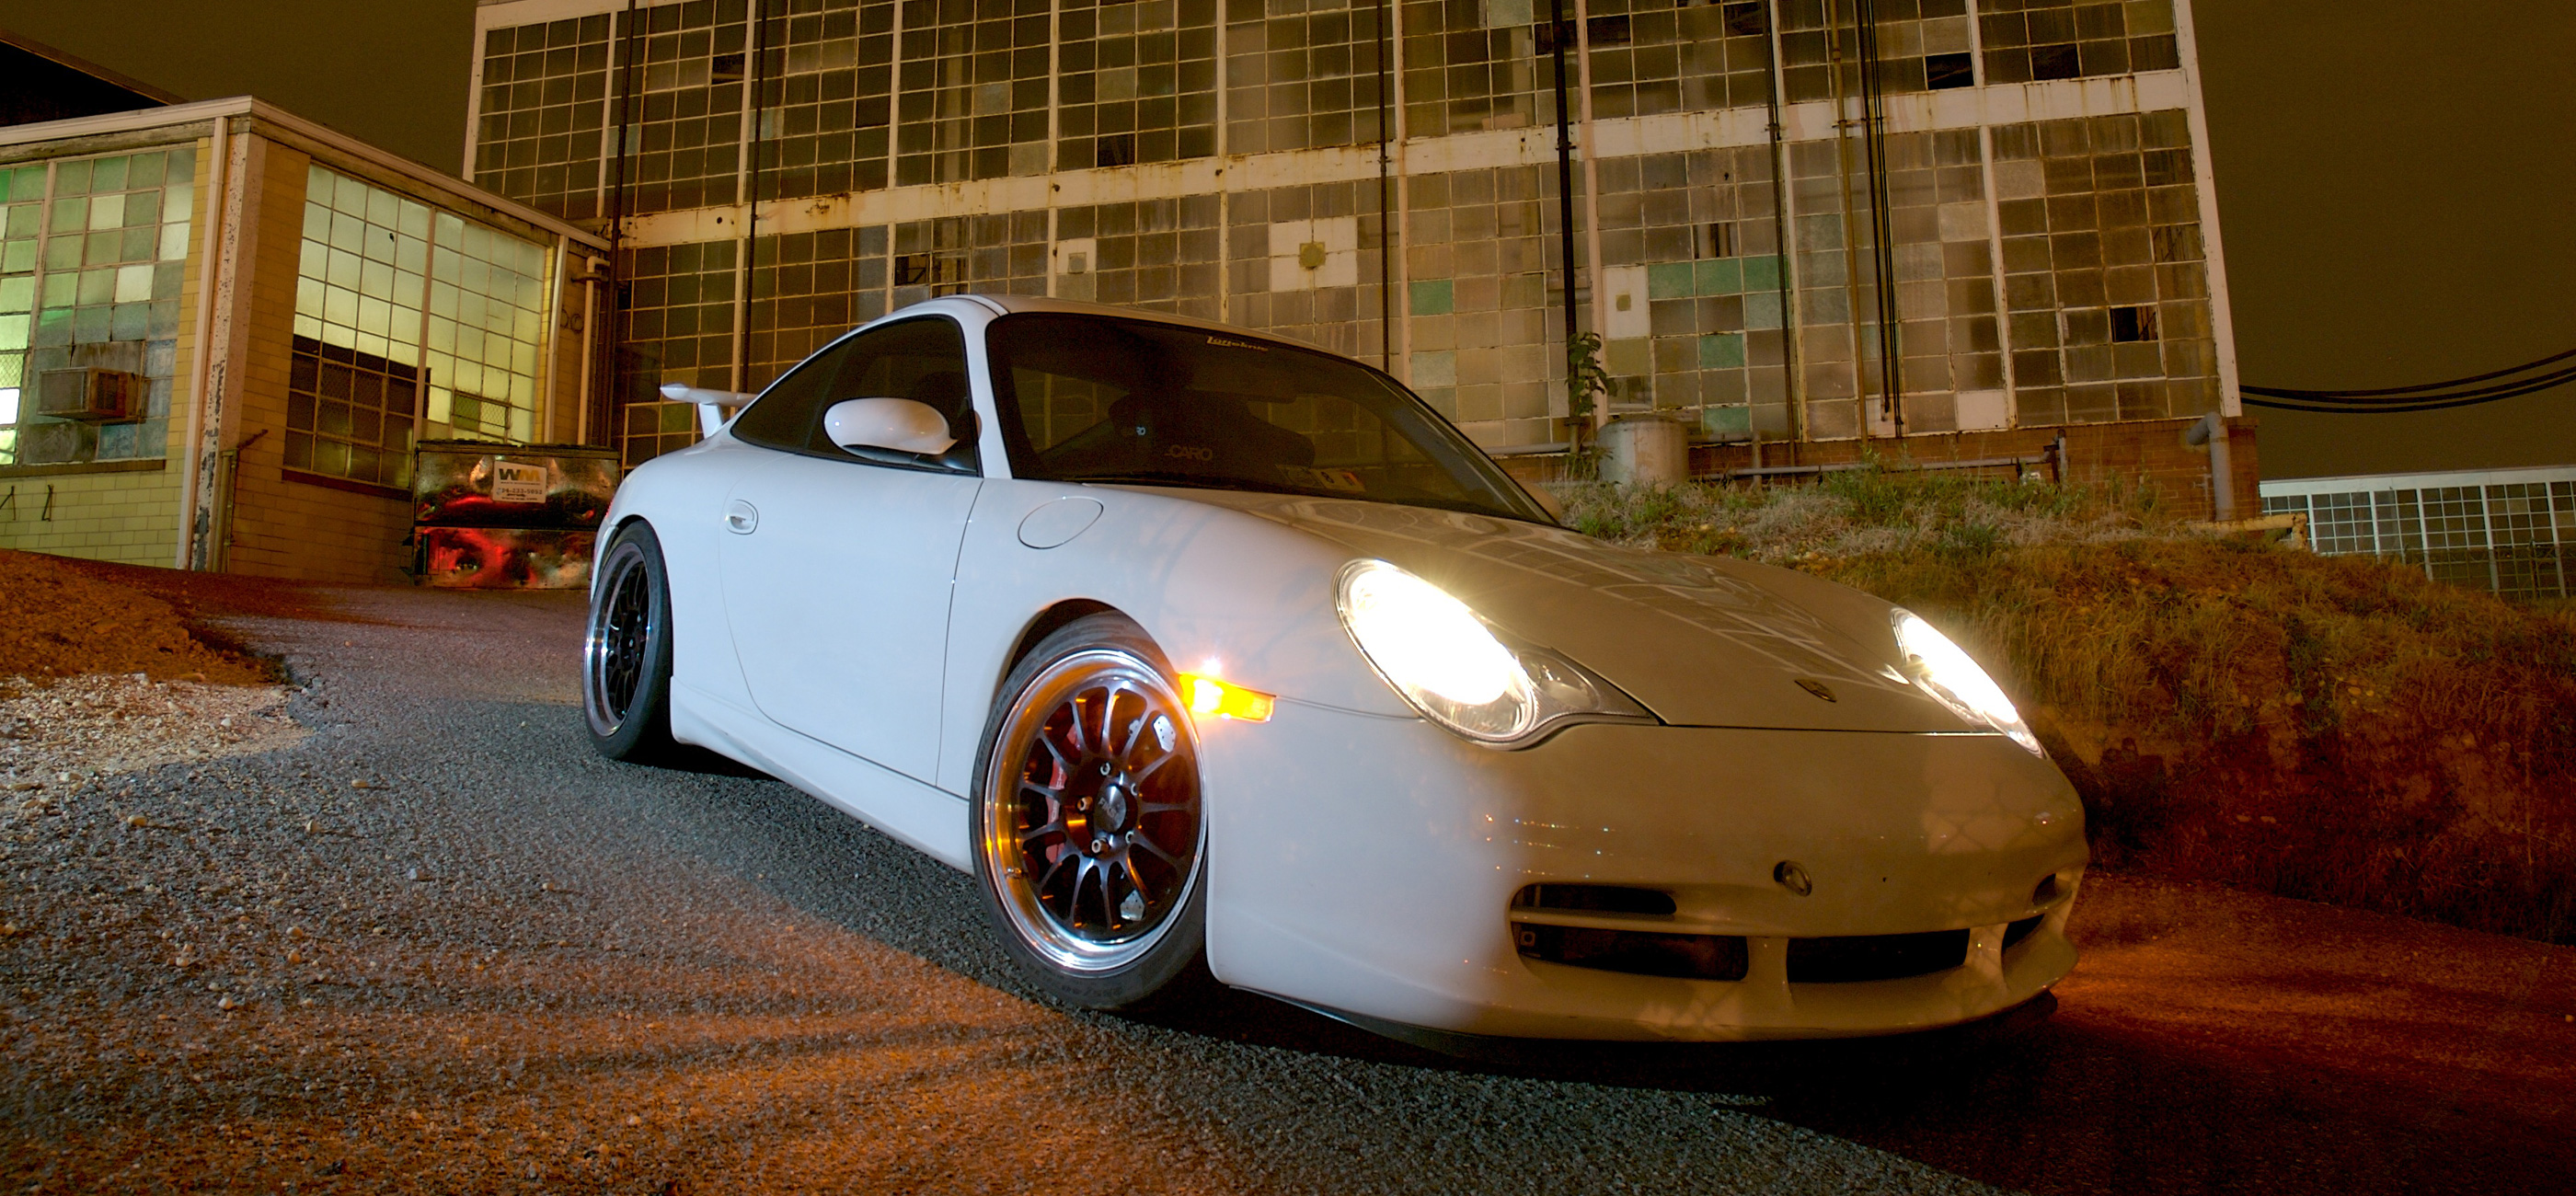 Header image showing a 996 GT3 in front of a building at night